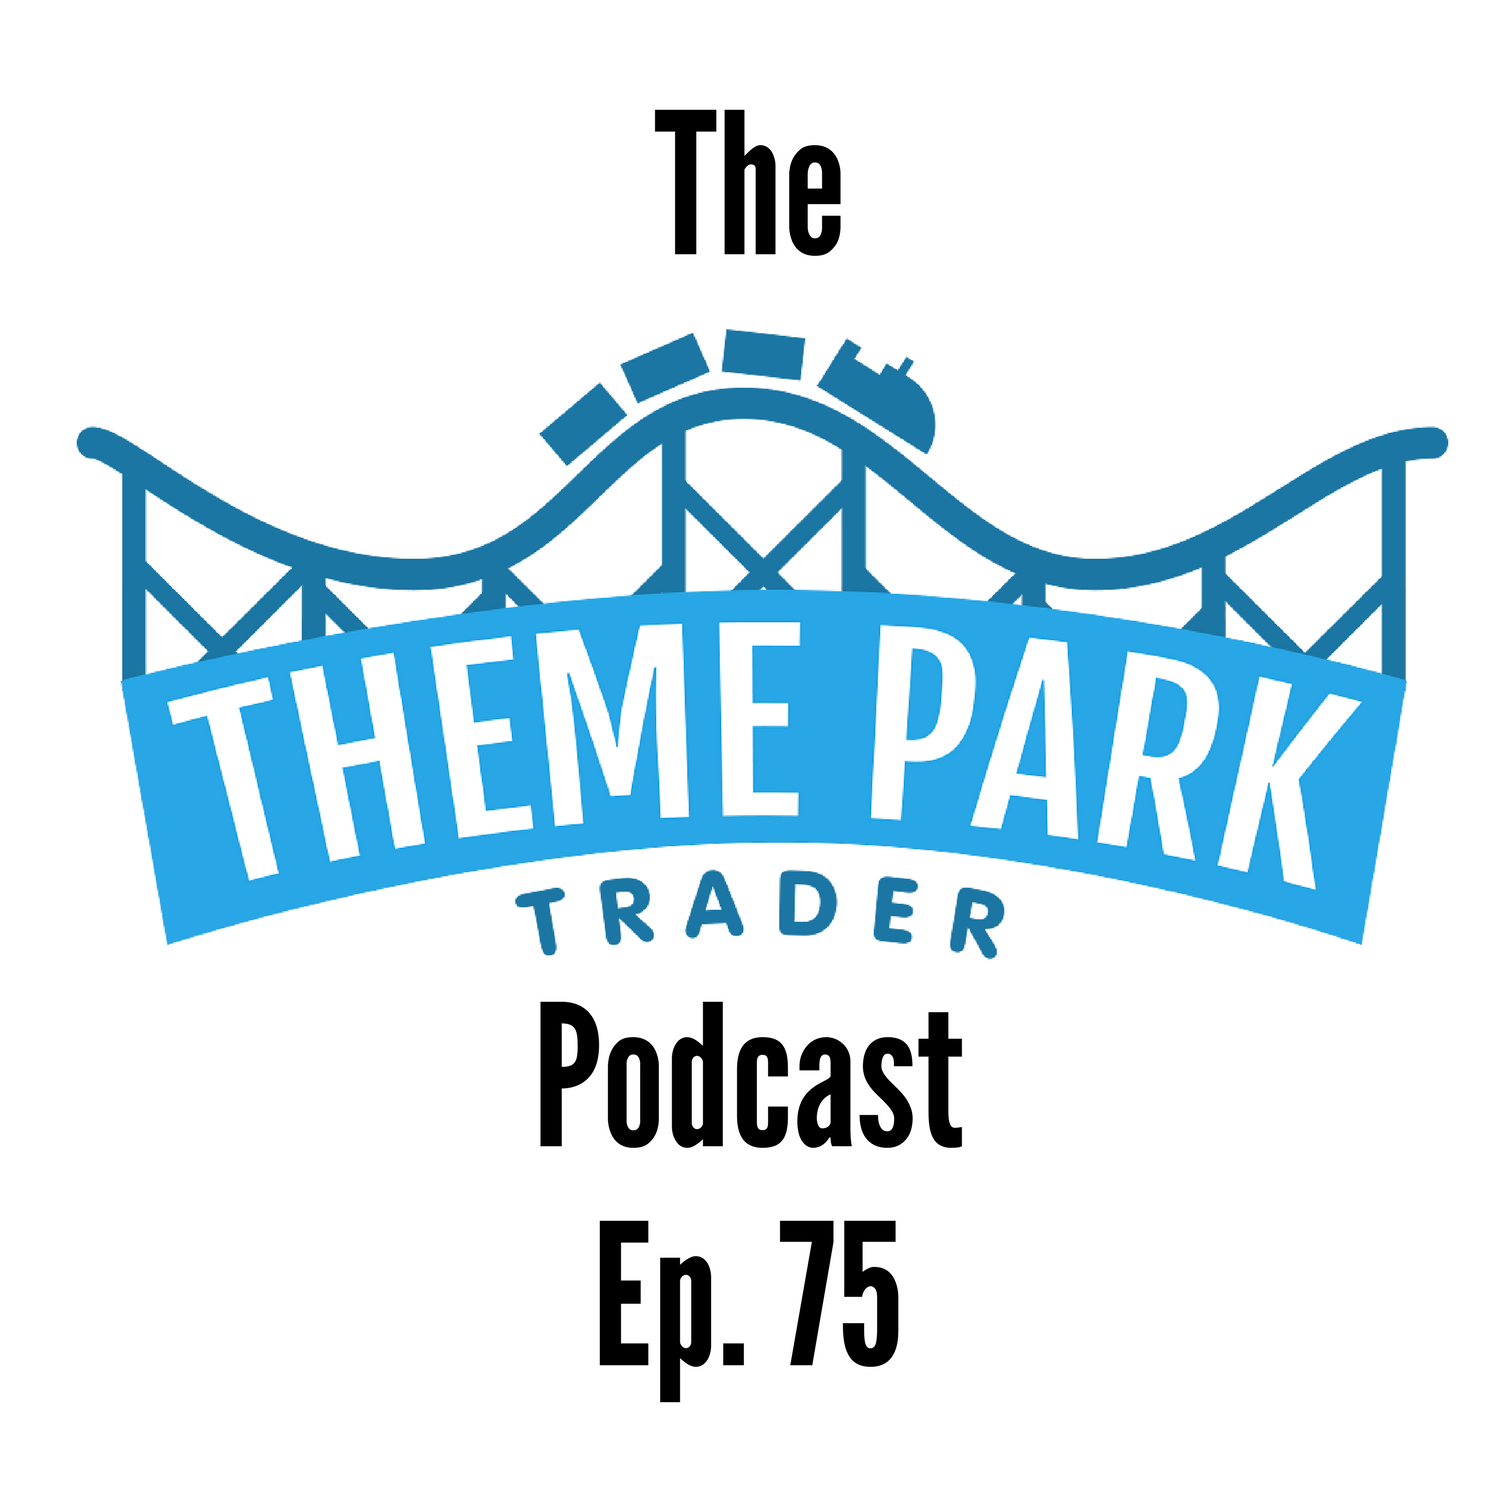 Episode 75 - Redhead Scene Being Replaced on Pirates, Gift Cards Being Offered Instead of Room Cleaning, Poor Reviews of Great Theme Park Attractions Returns with Spaceship Earth + More!